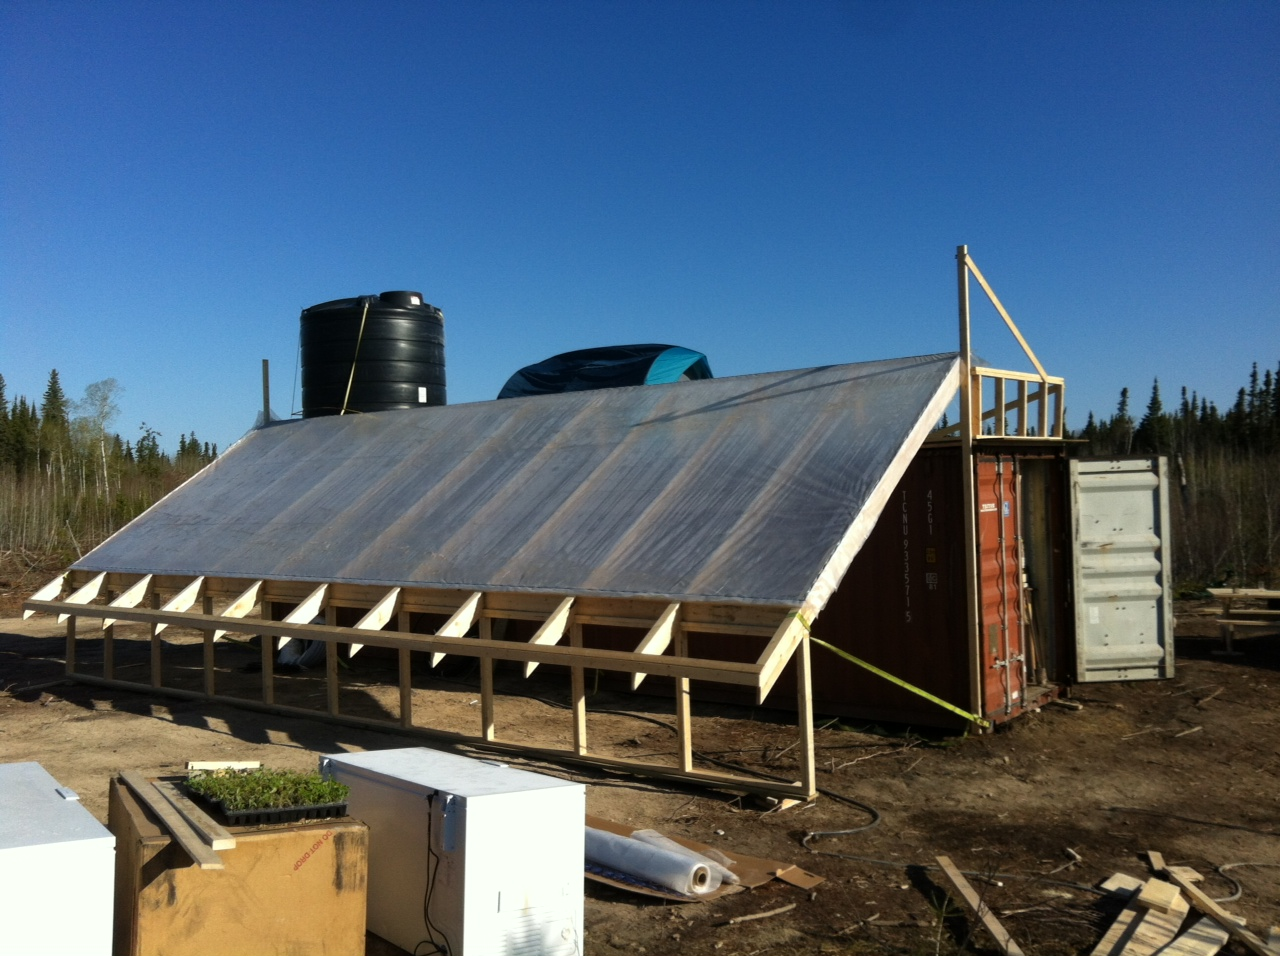 The greenhouse in progress - built off the south side of the container.